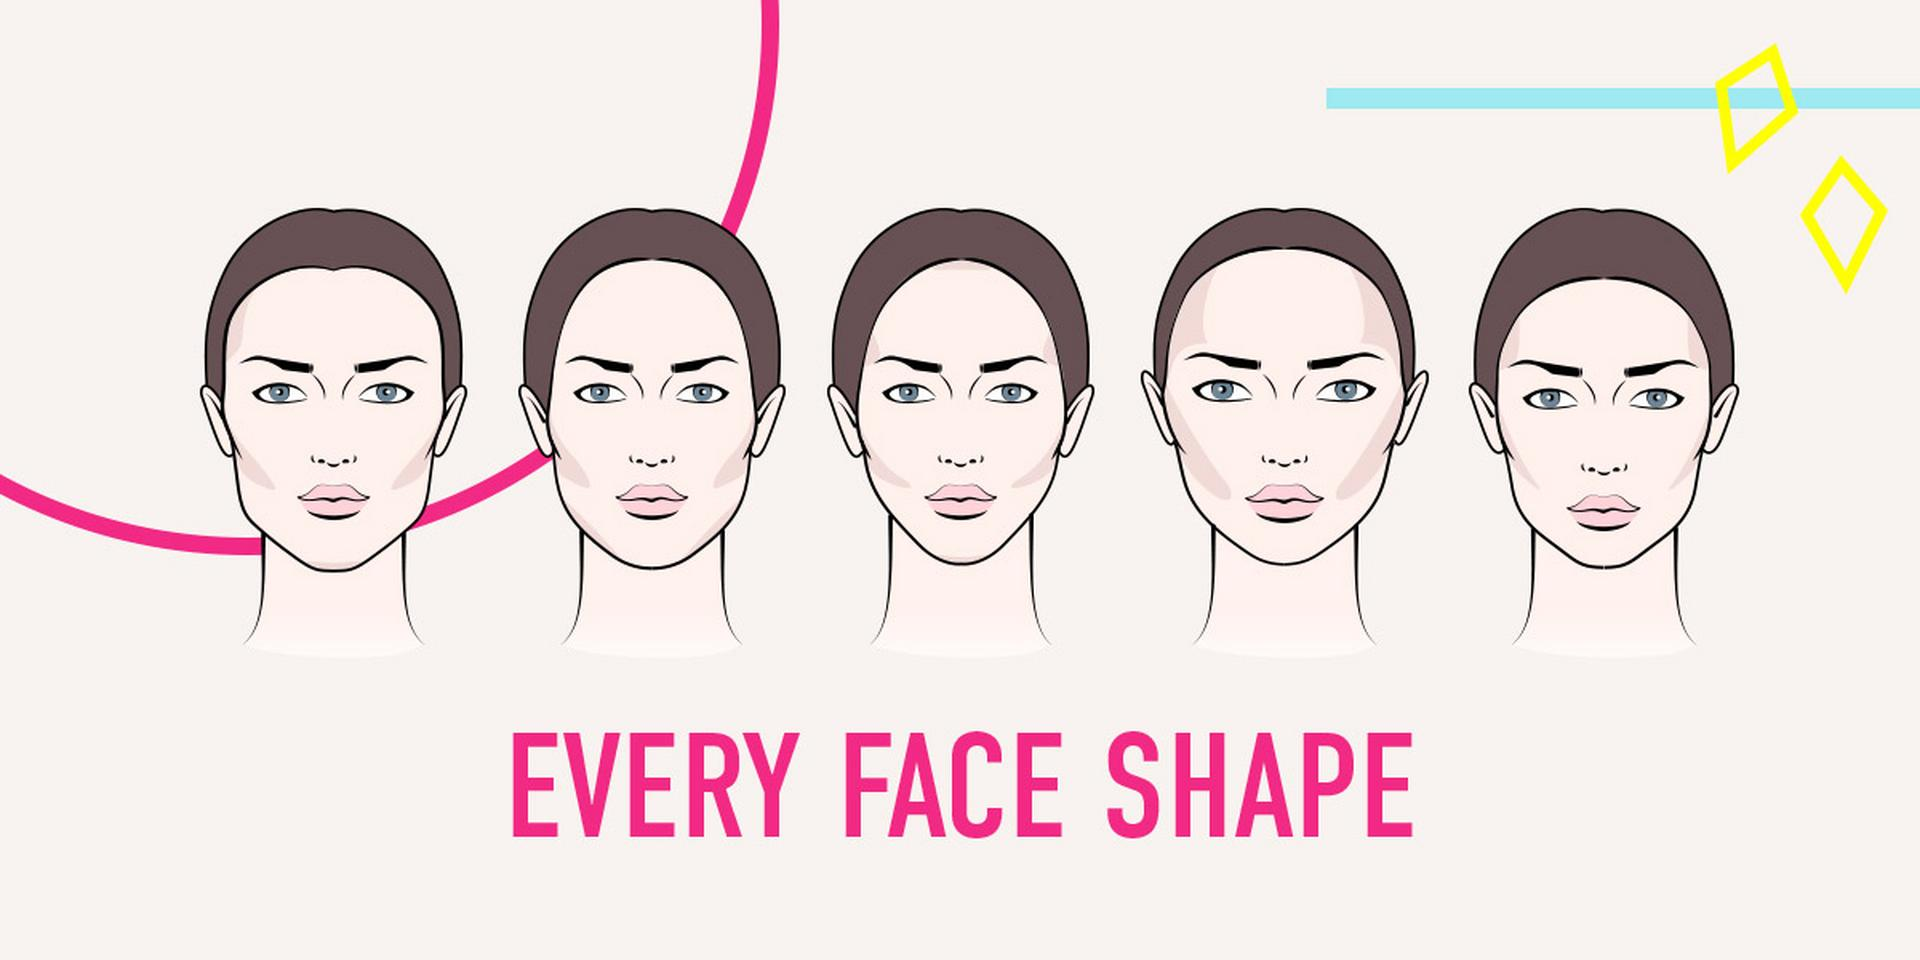 Every face shape